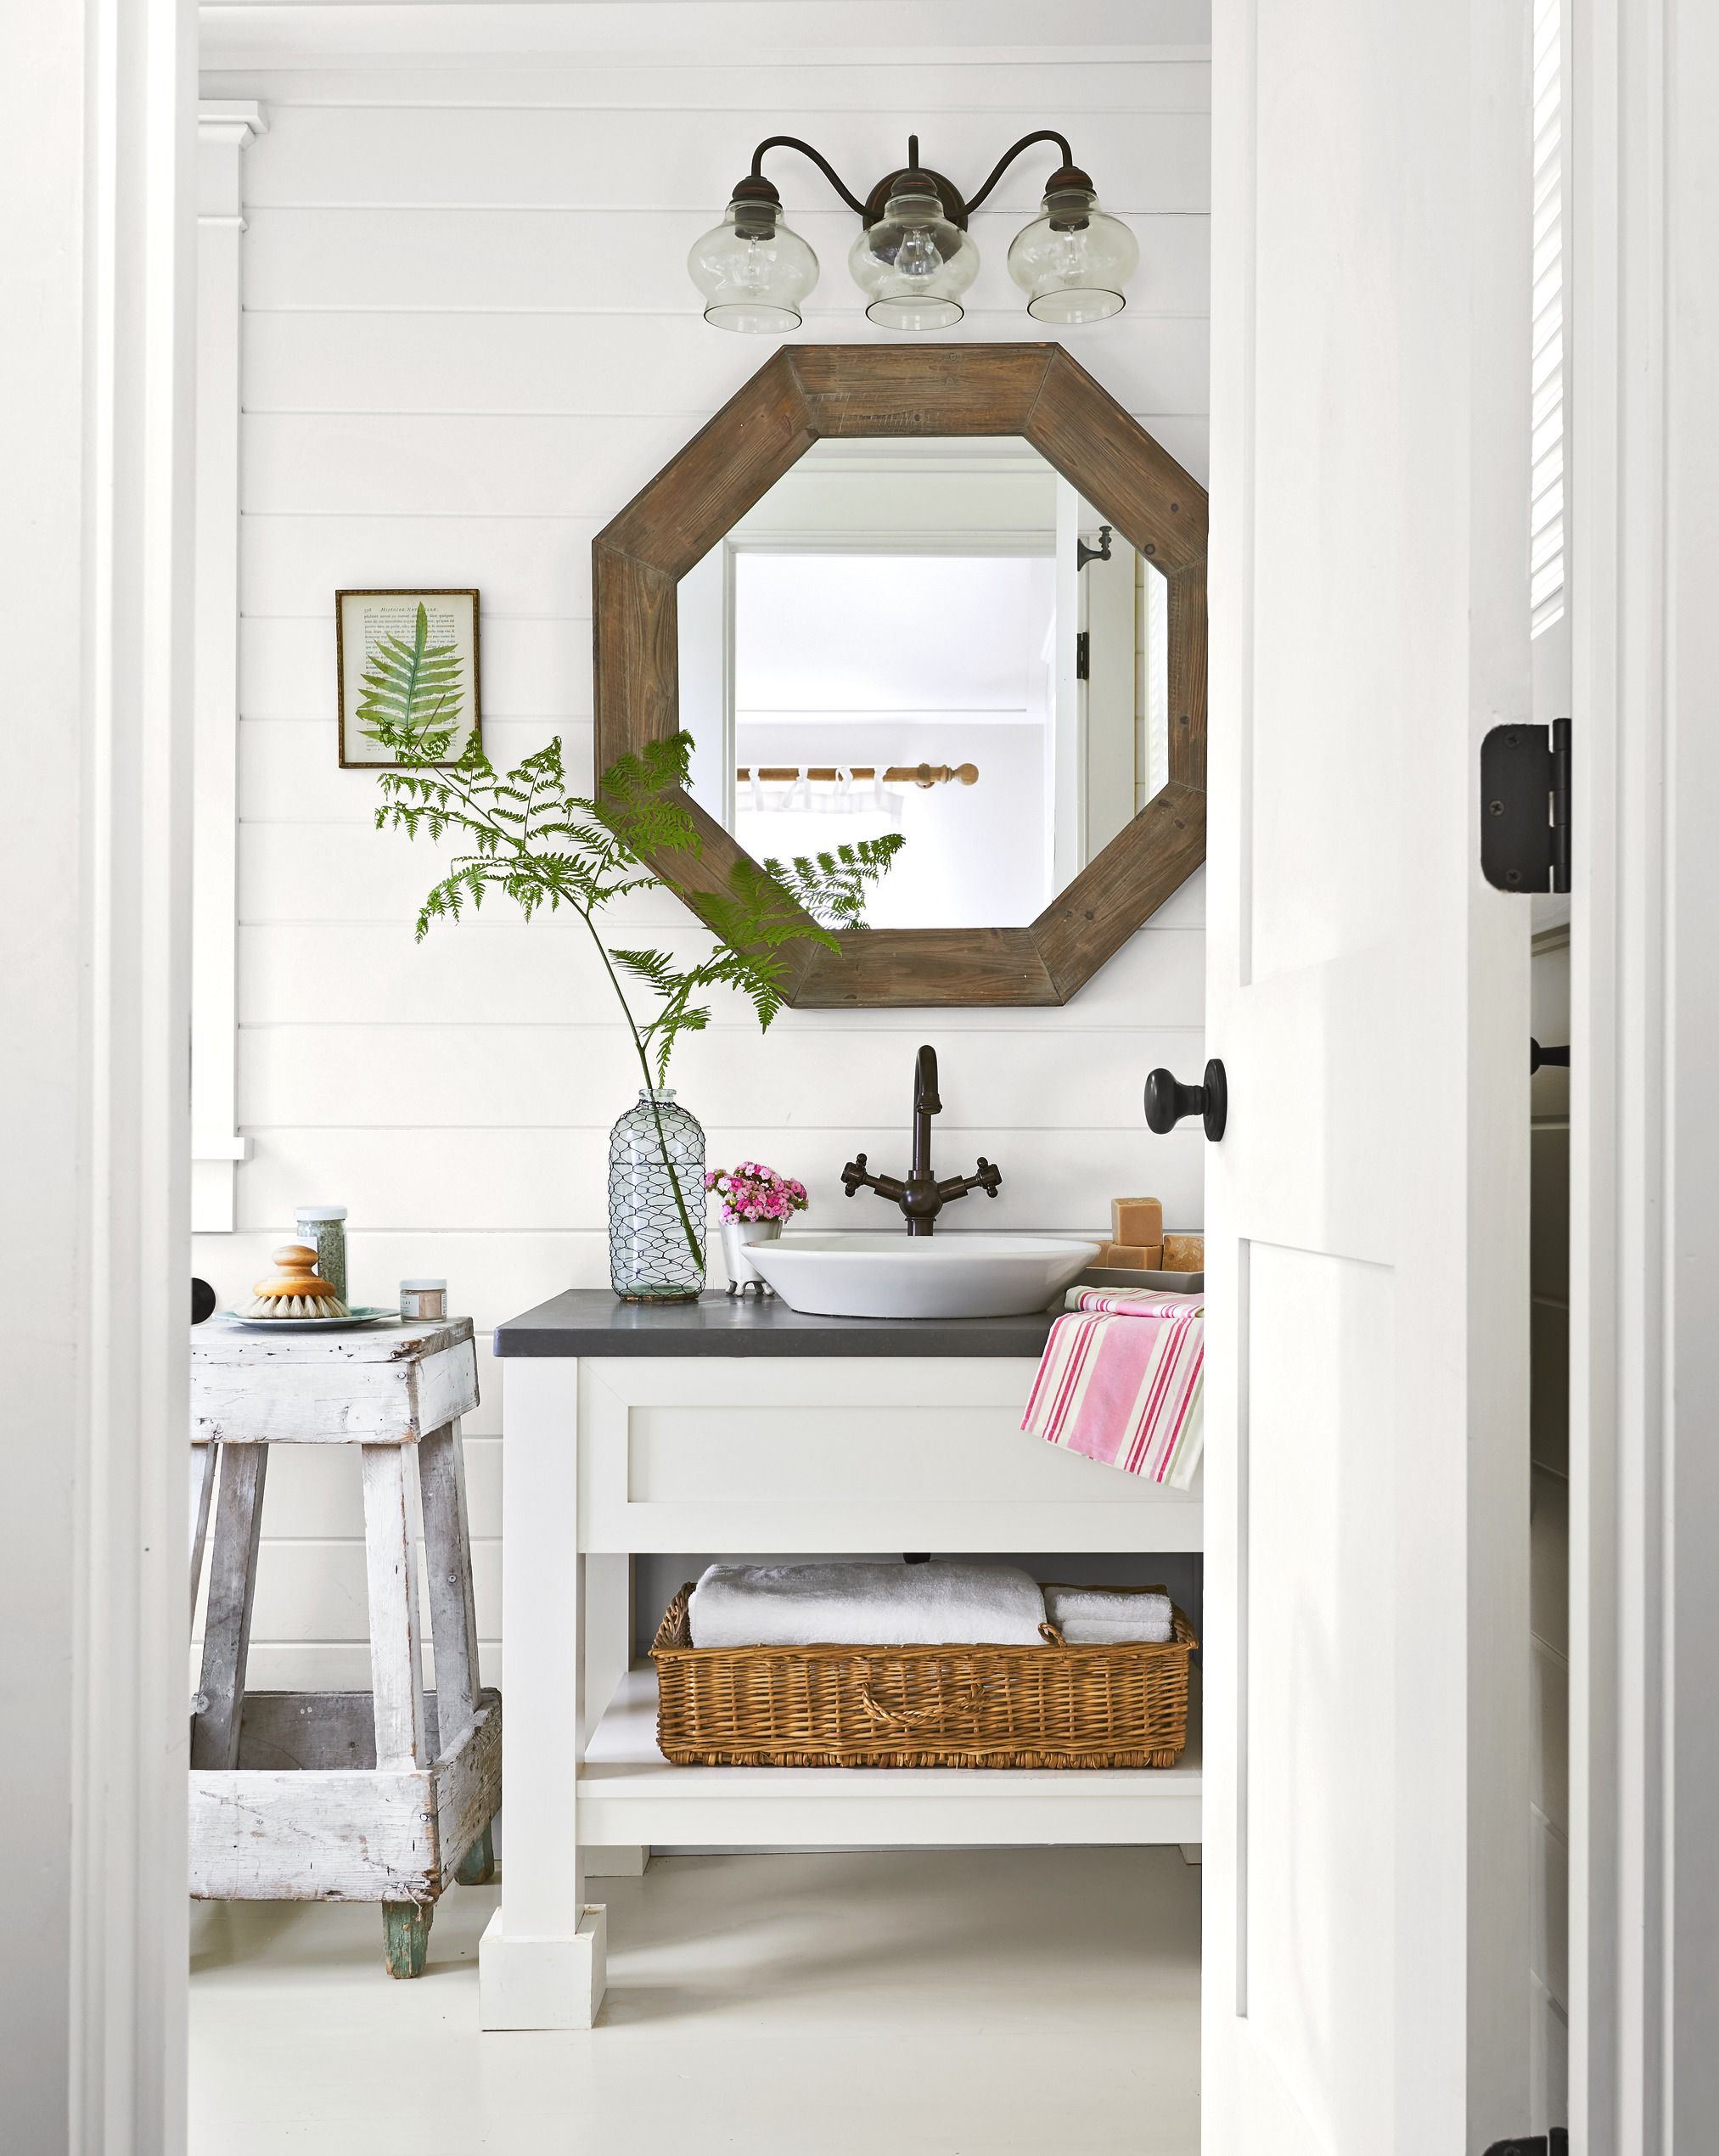 20 Half Bathroom Ideas - Decor Ideas For Small Spaces